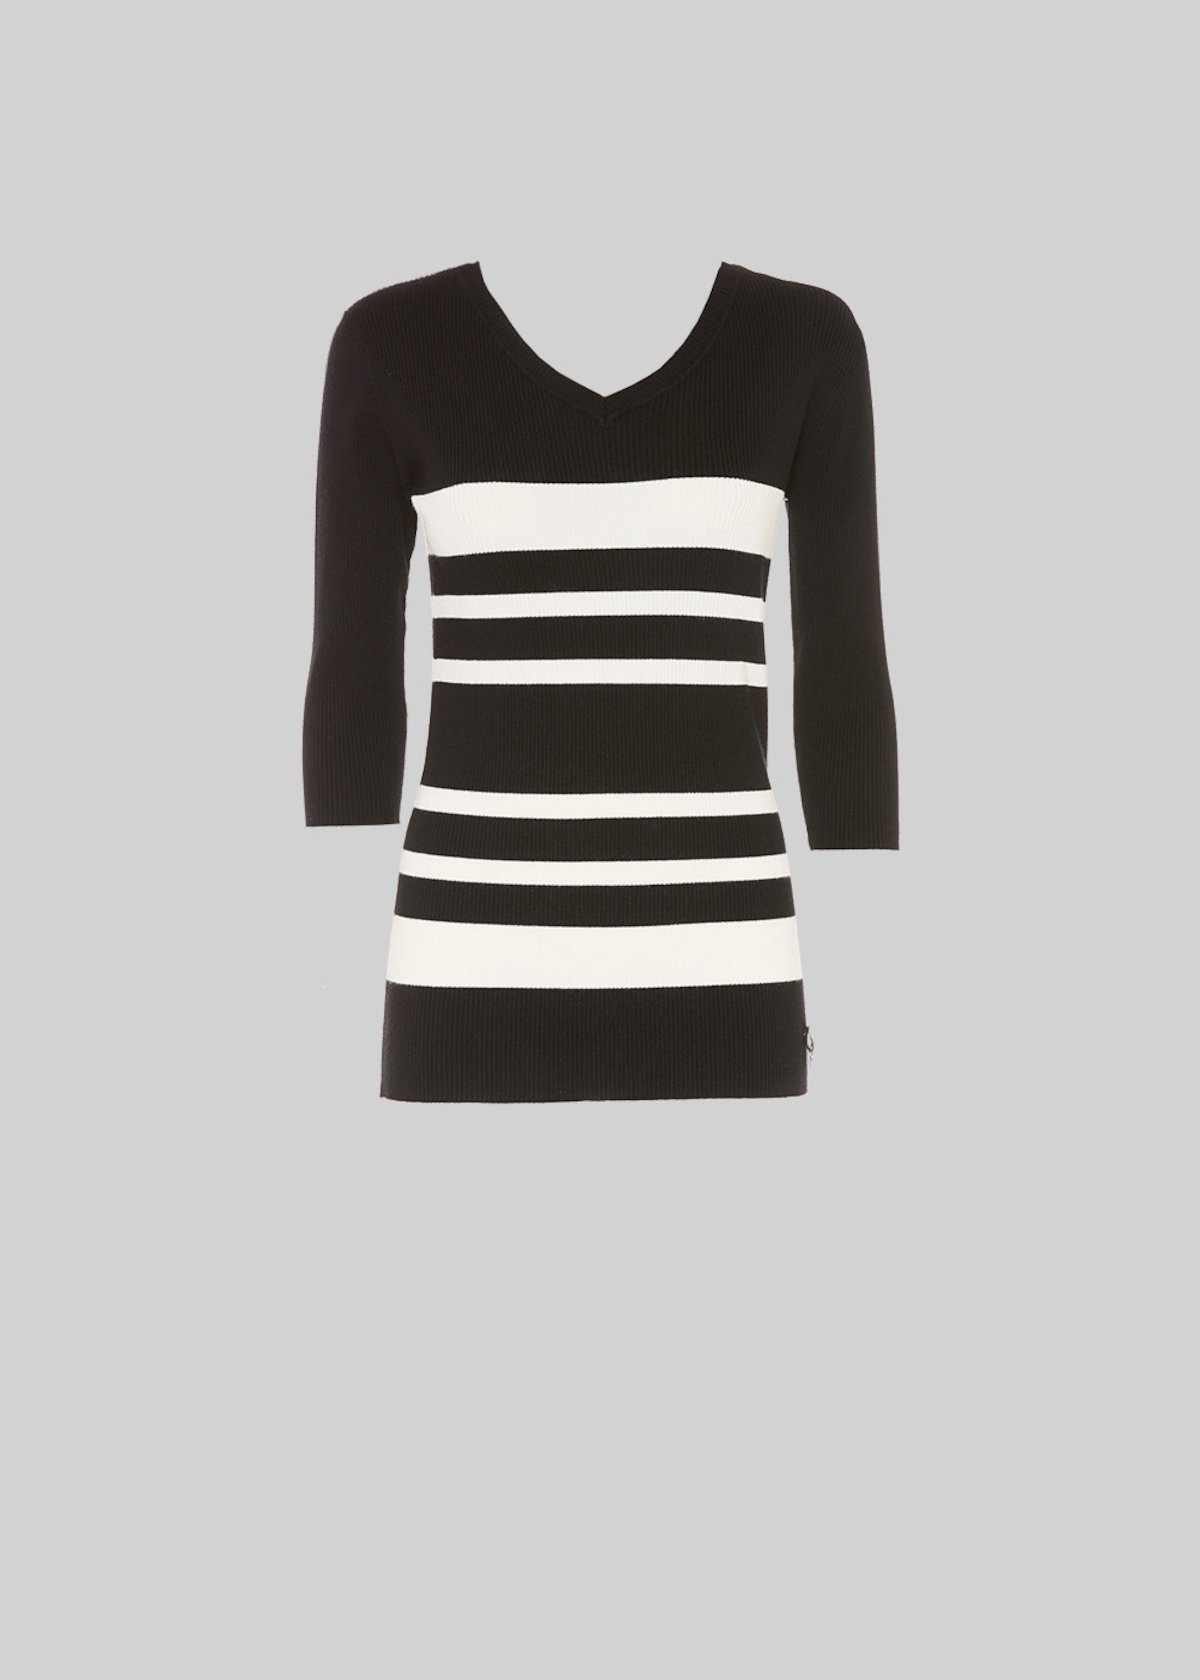 Michael stripe fantasy sweater with V-neck - Black / White Stripes - Woman - Category image